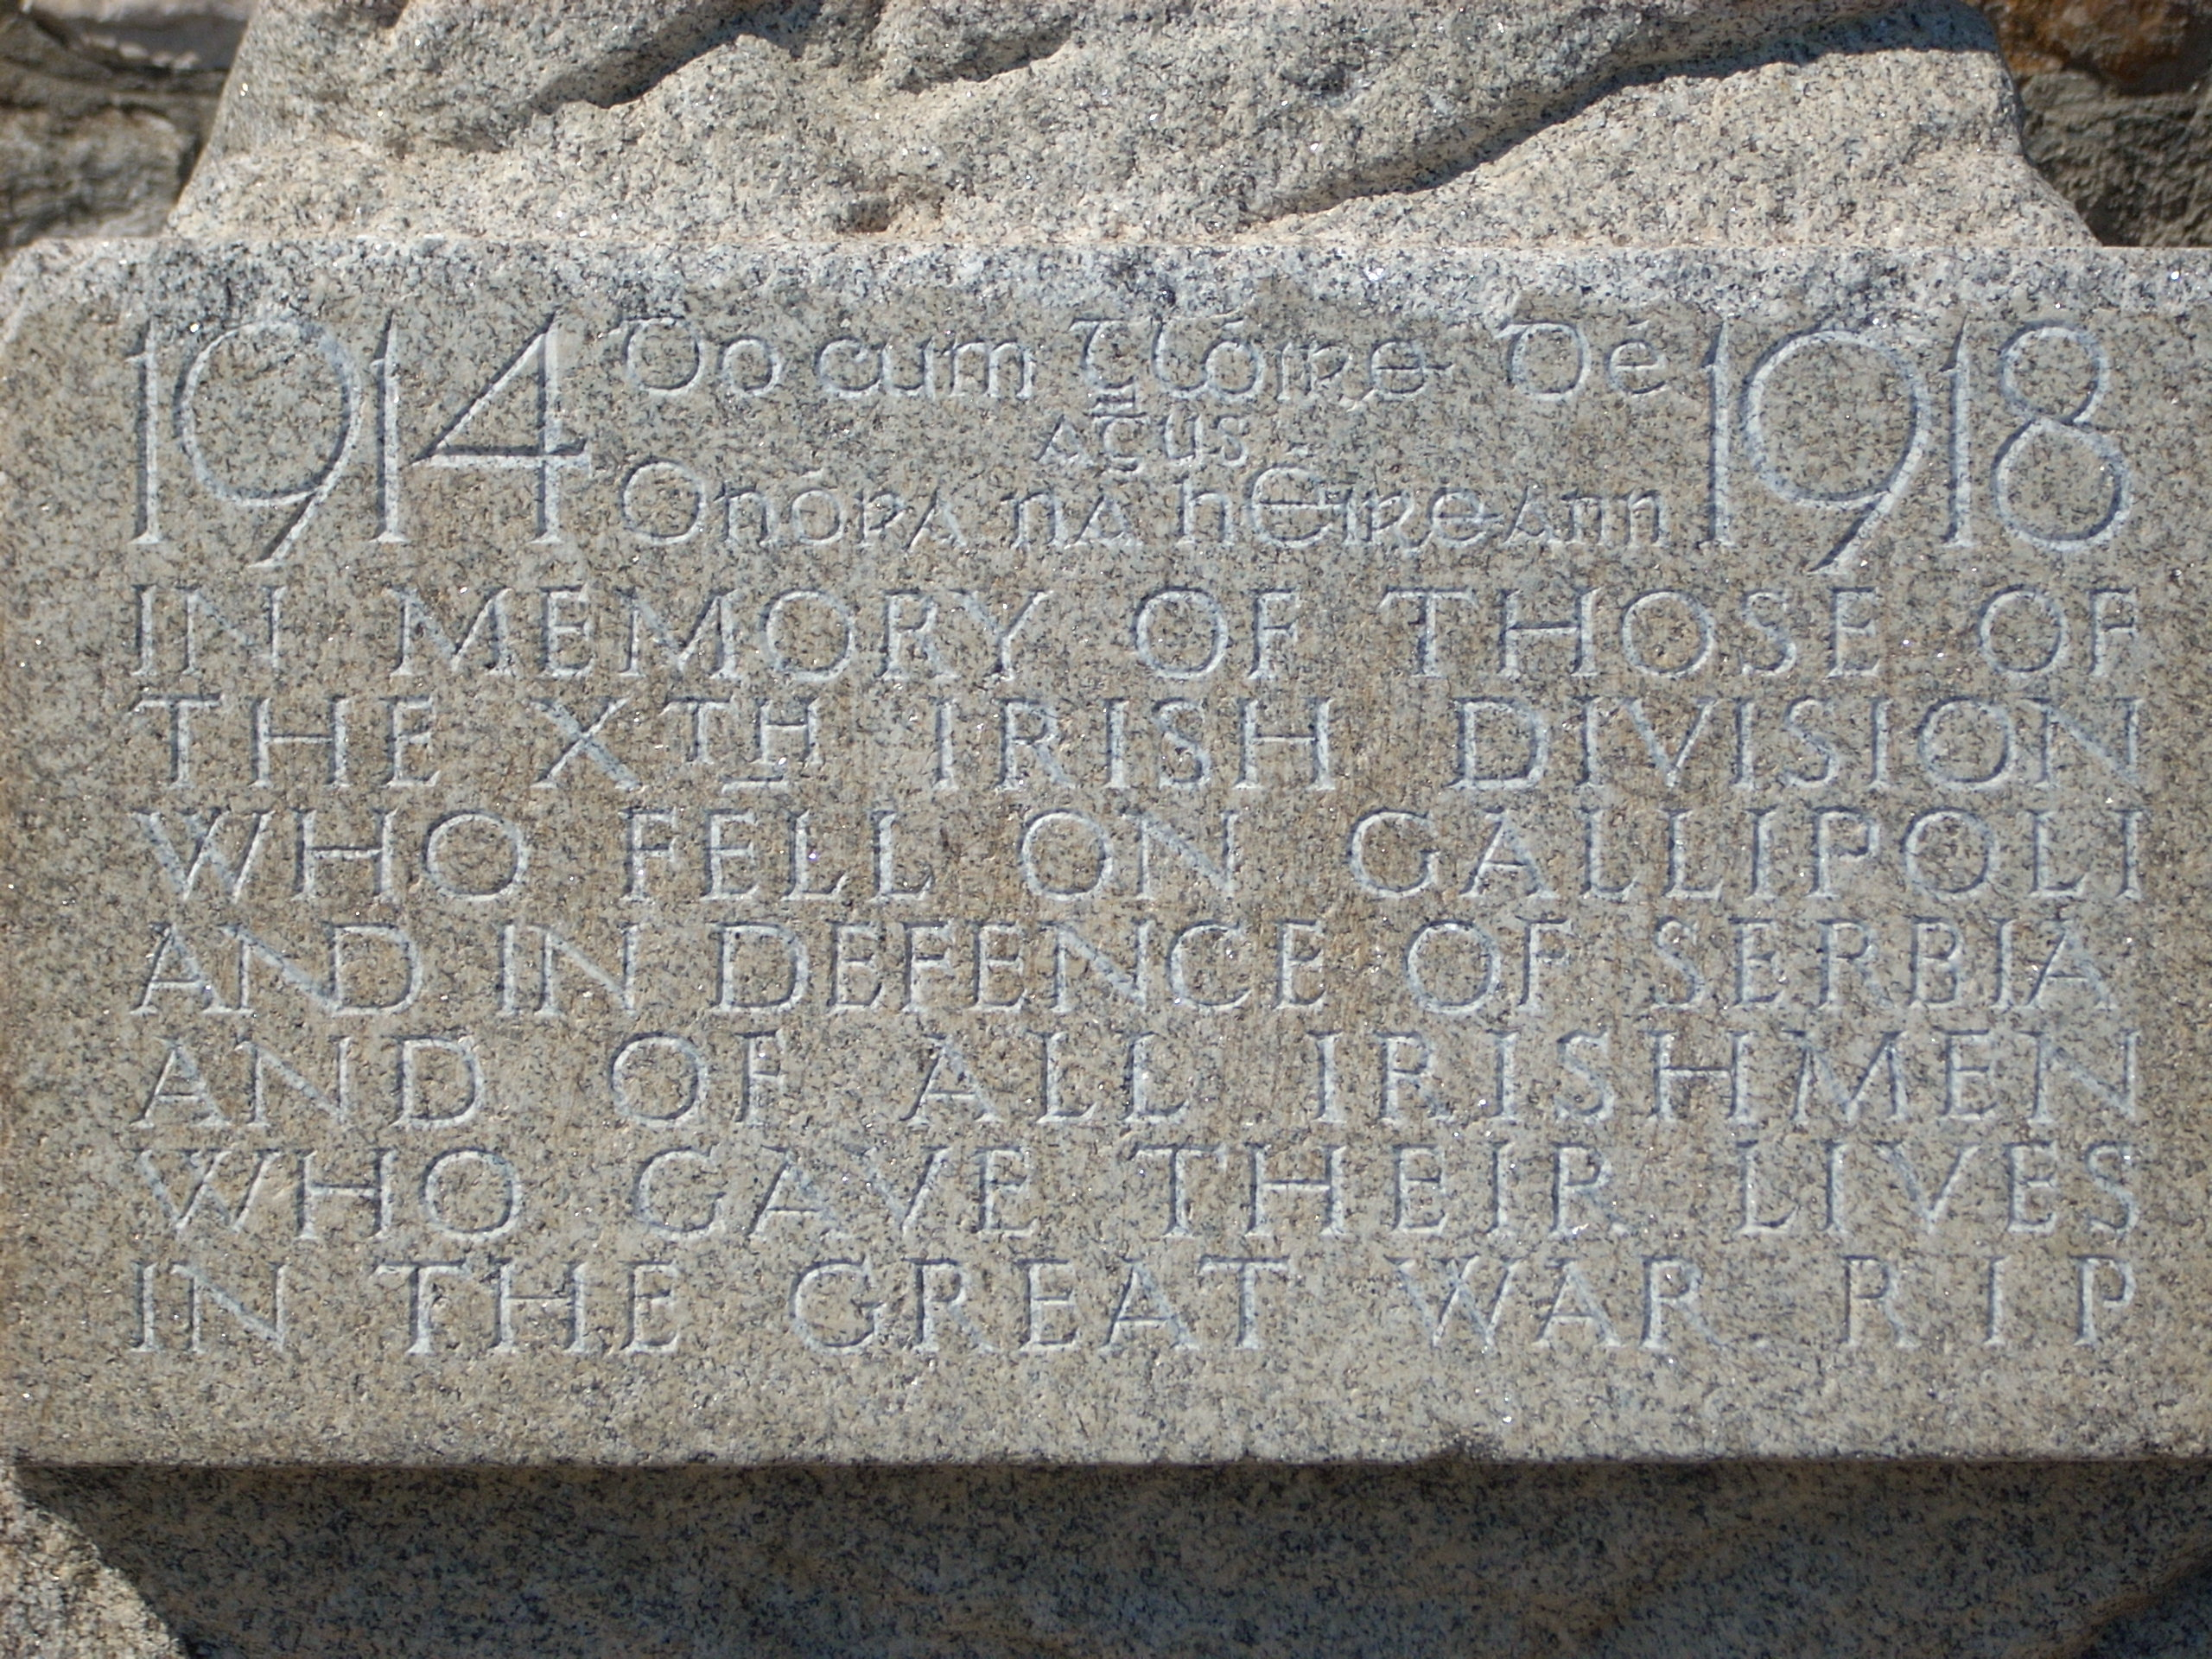 Rabrovo - Irish monument inscription